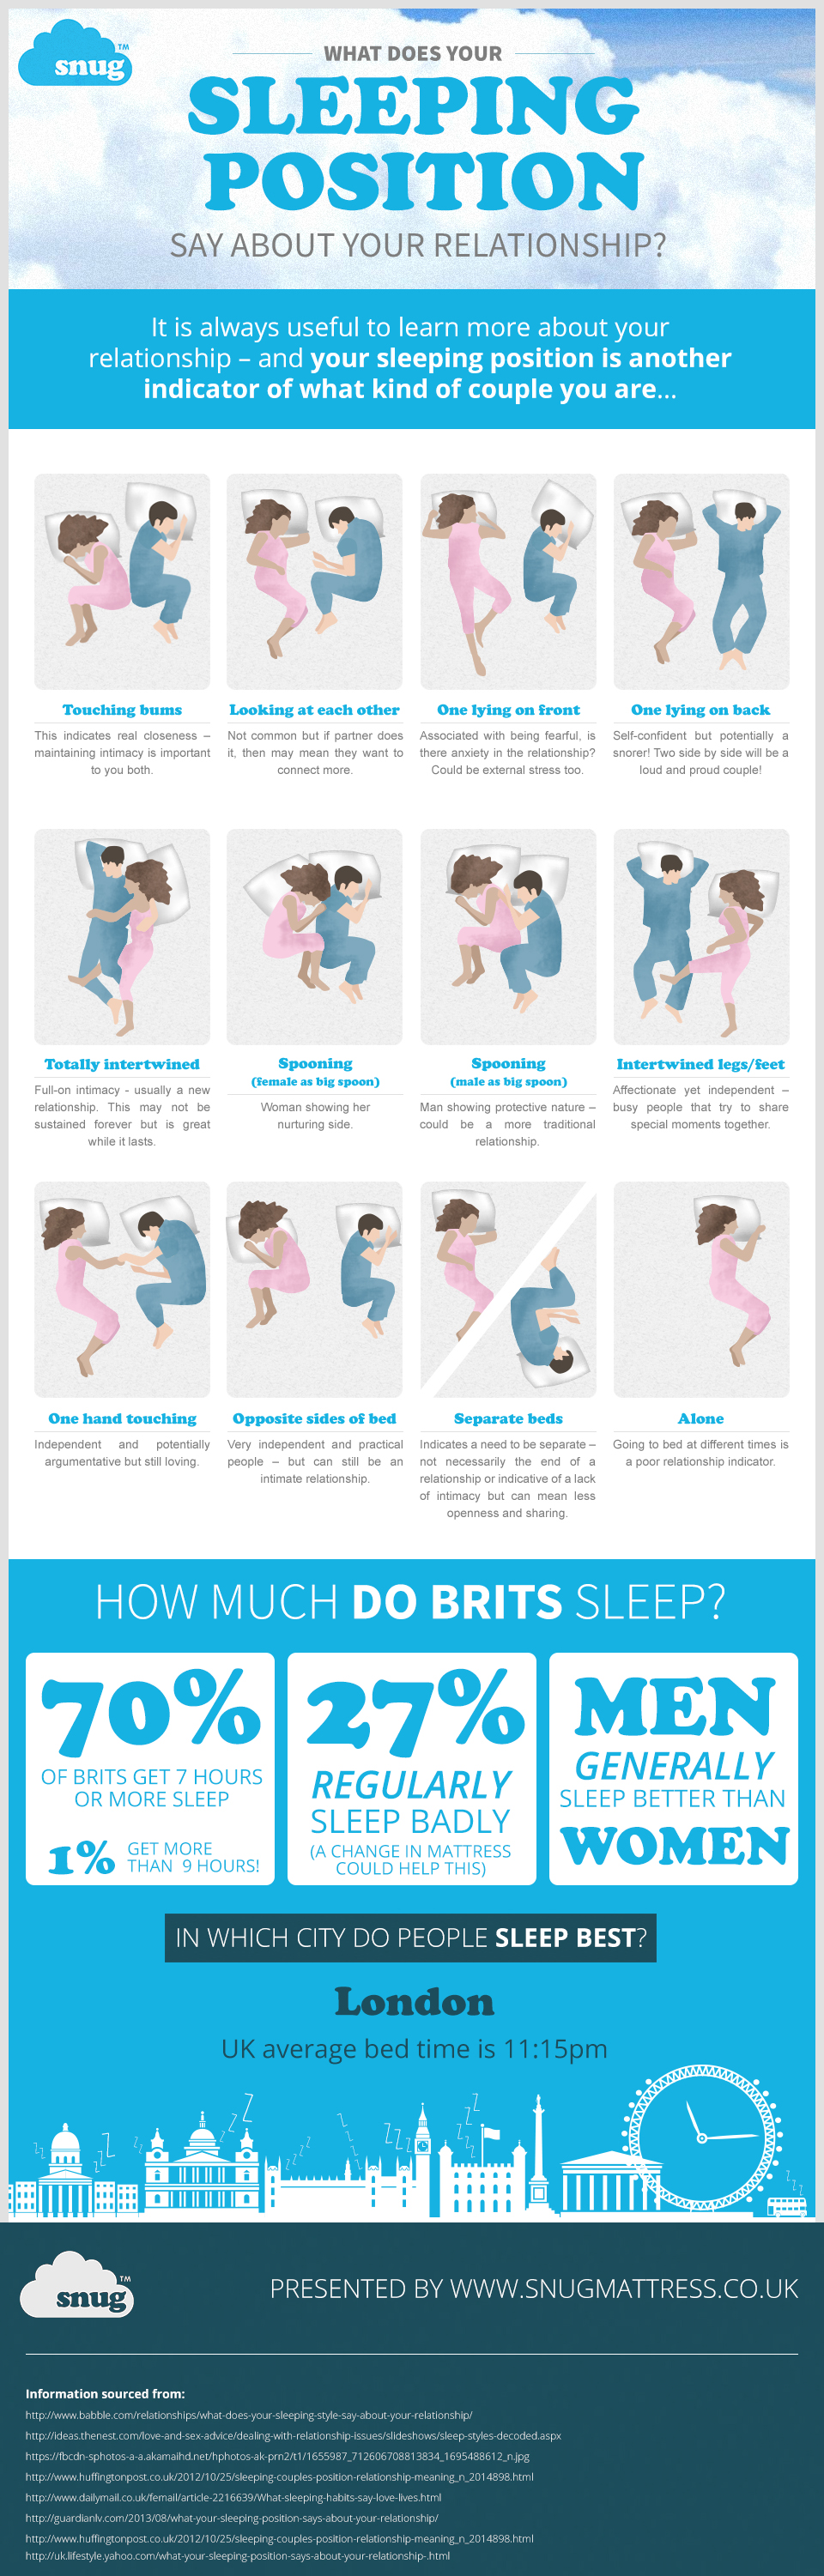 04 what-does-your-sleeping-position-say-about-your-relationship-infographic